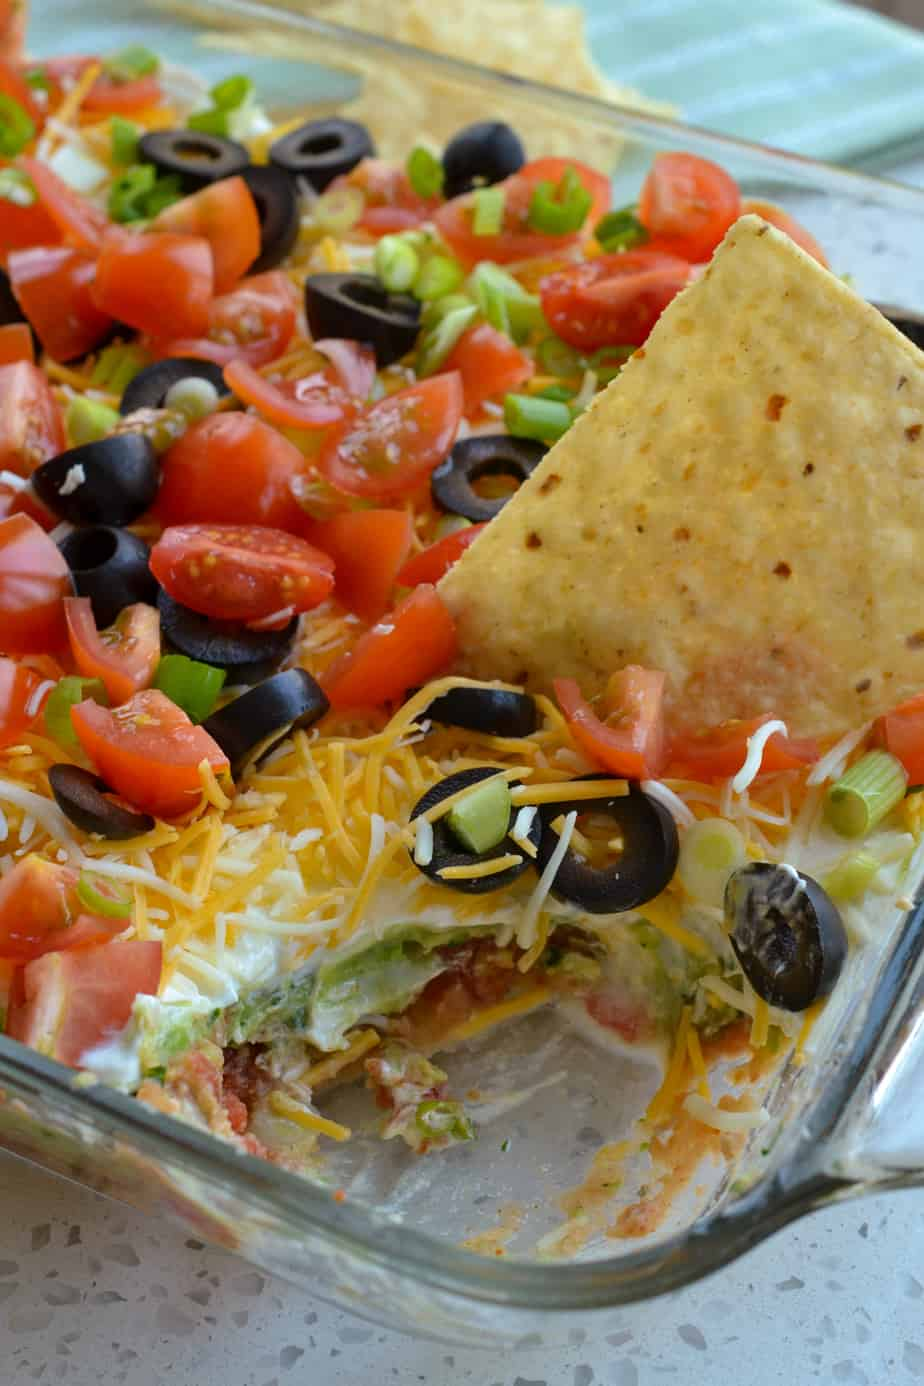 Enjoy this layer dip with tortilla chips.